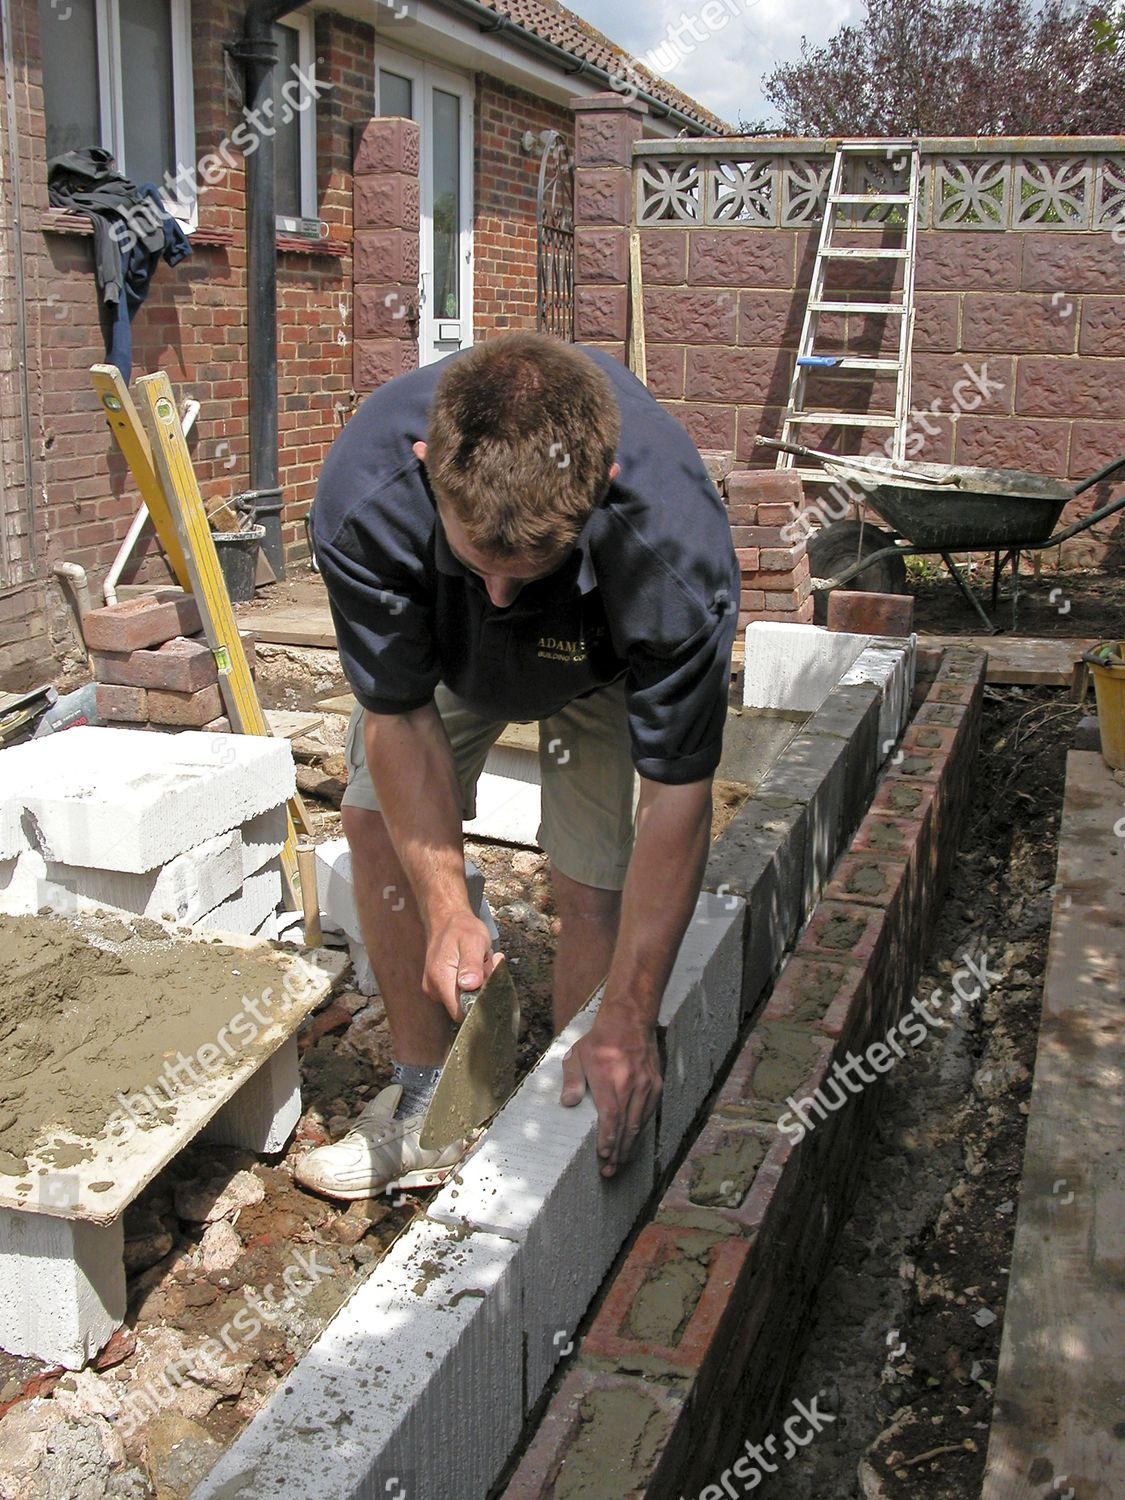 Model Released cementing thermalite bricks home extension